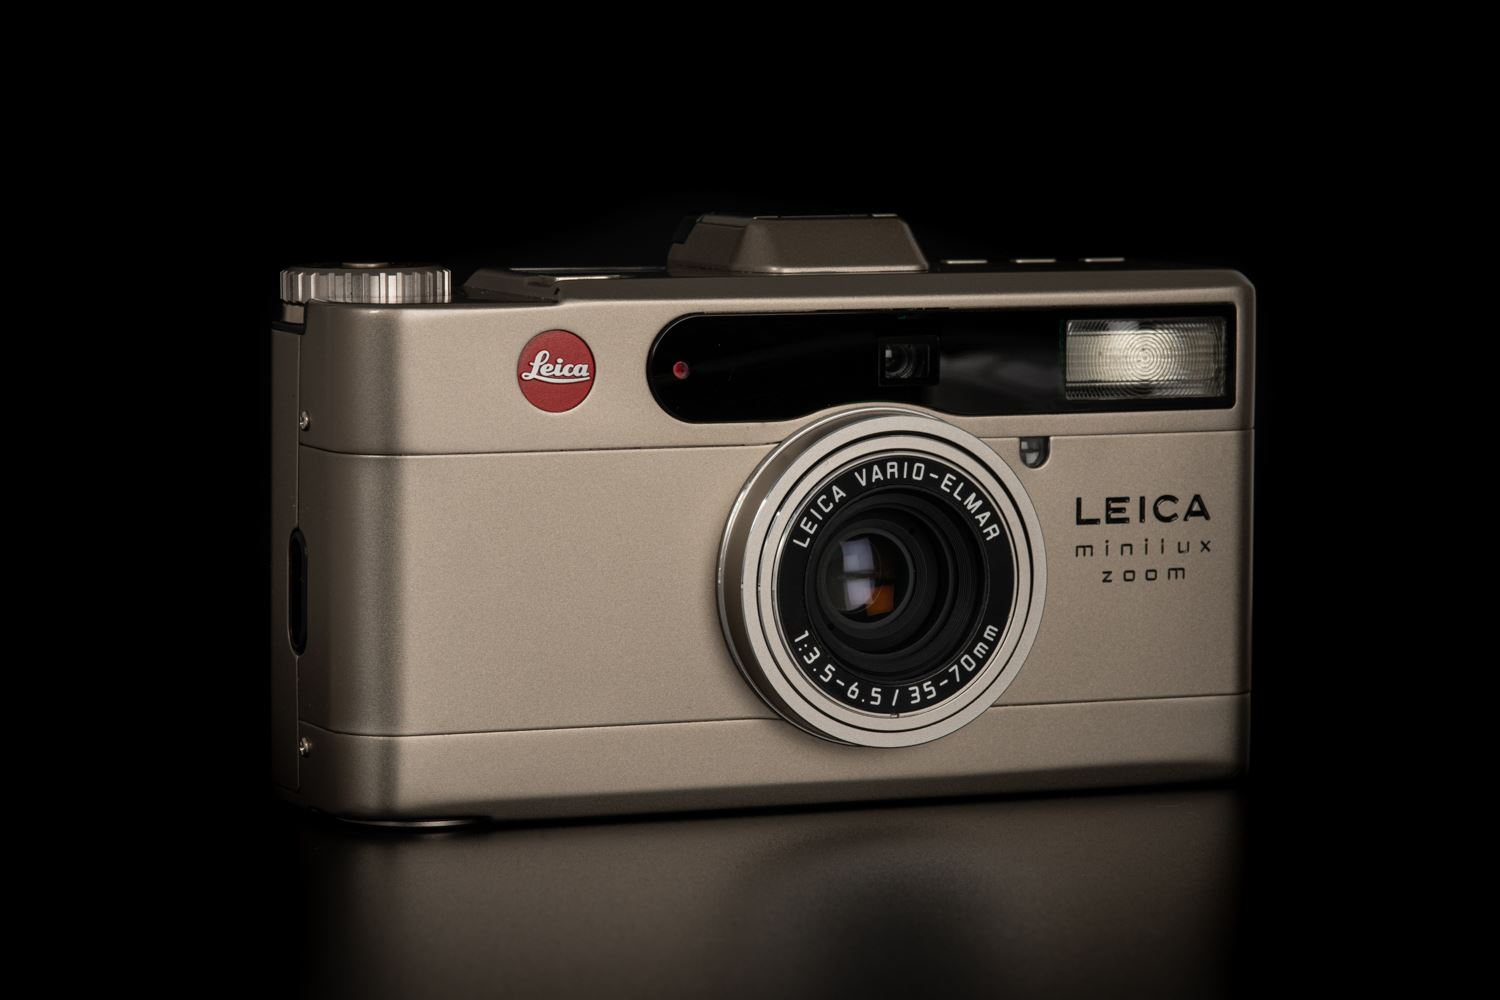 Picture of Leica Minilux Zoom Camera